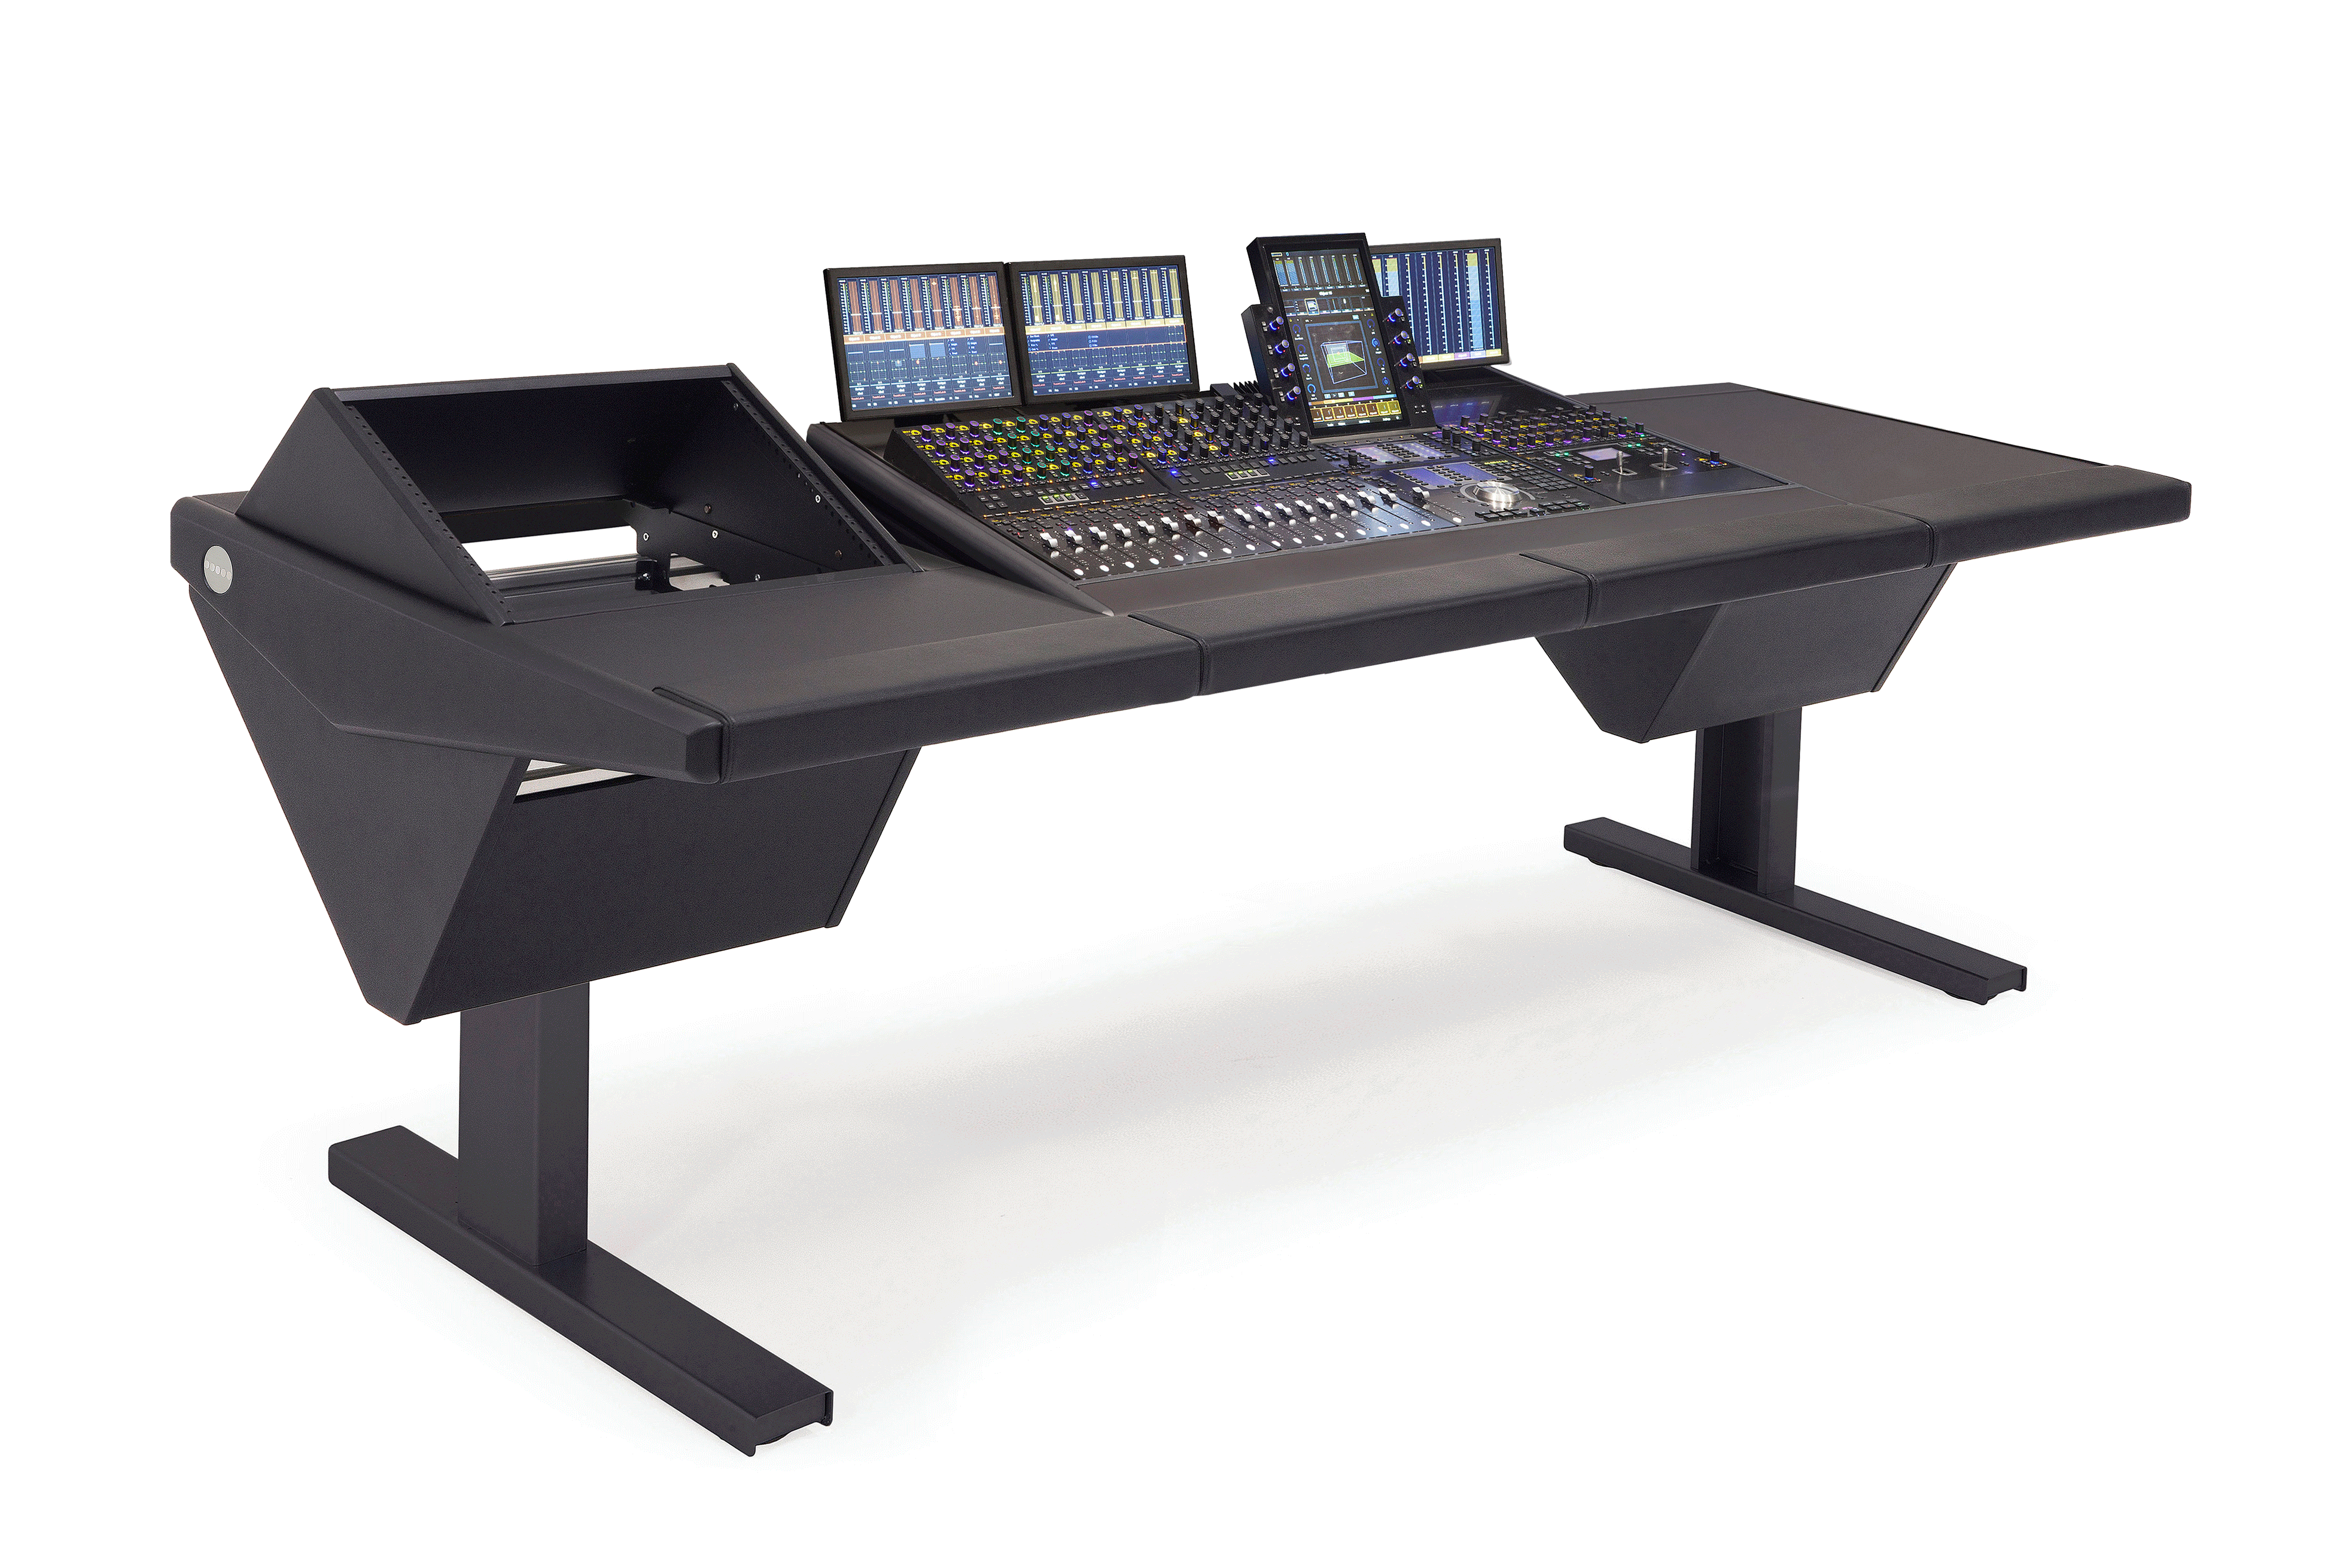 S4 - 4 Foot Wide Base System with Rack (L) and Desk (R)